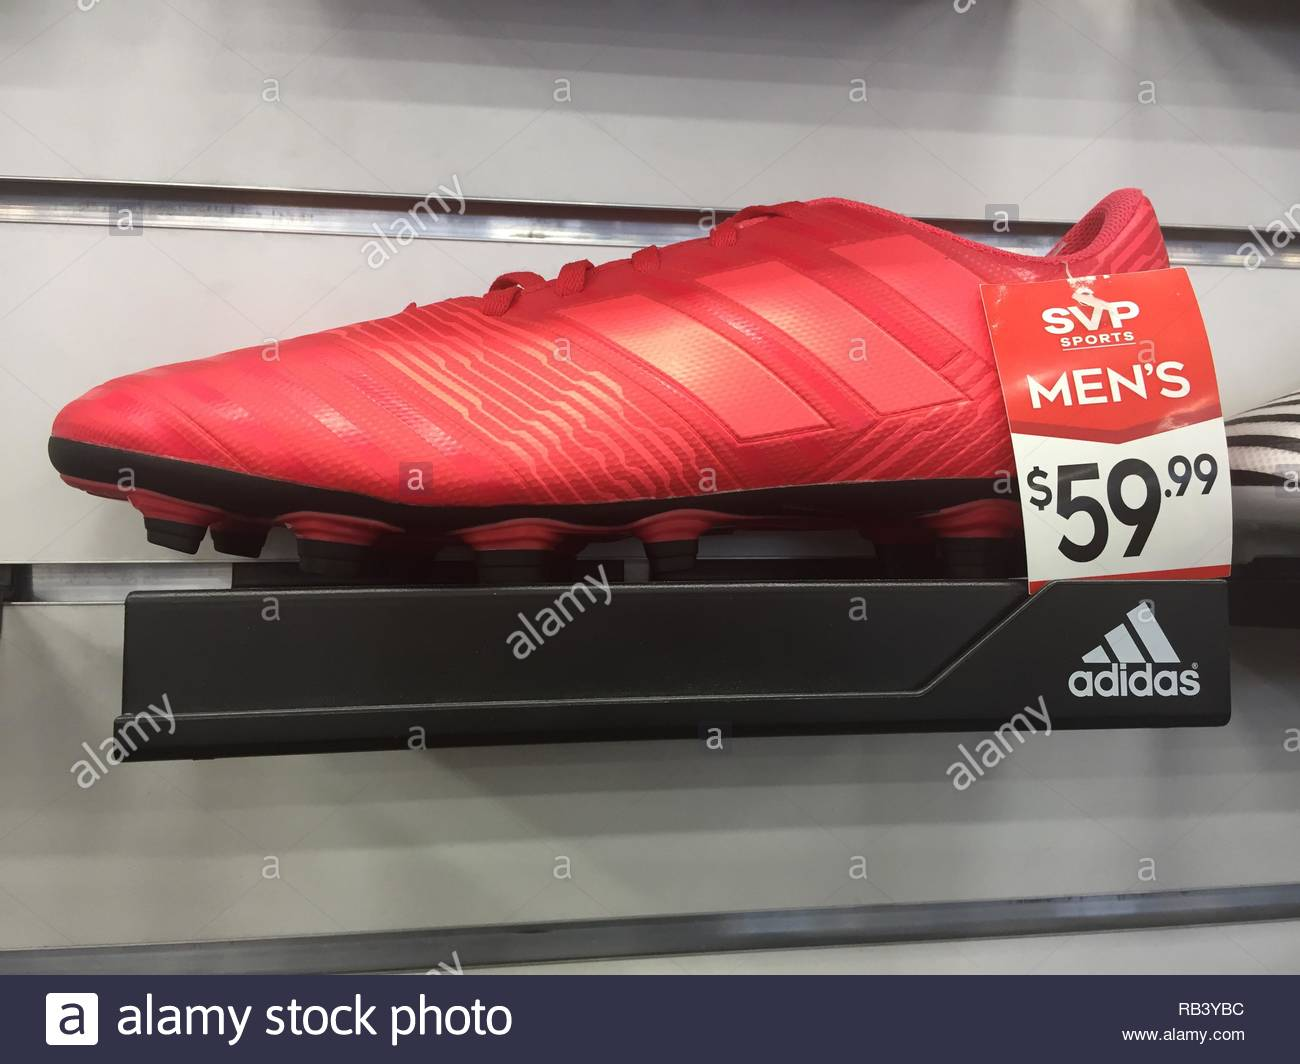 Turkish Store Mississauga Adidas Shoes Stock Photos And Adidas Shoes Stock Images Alamy